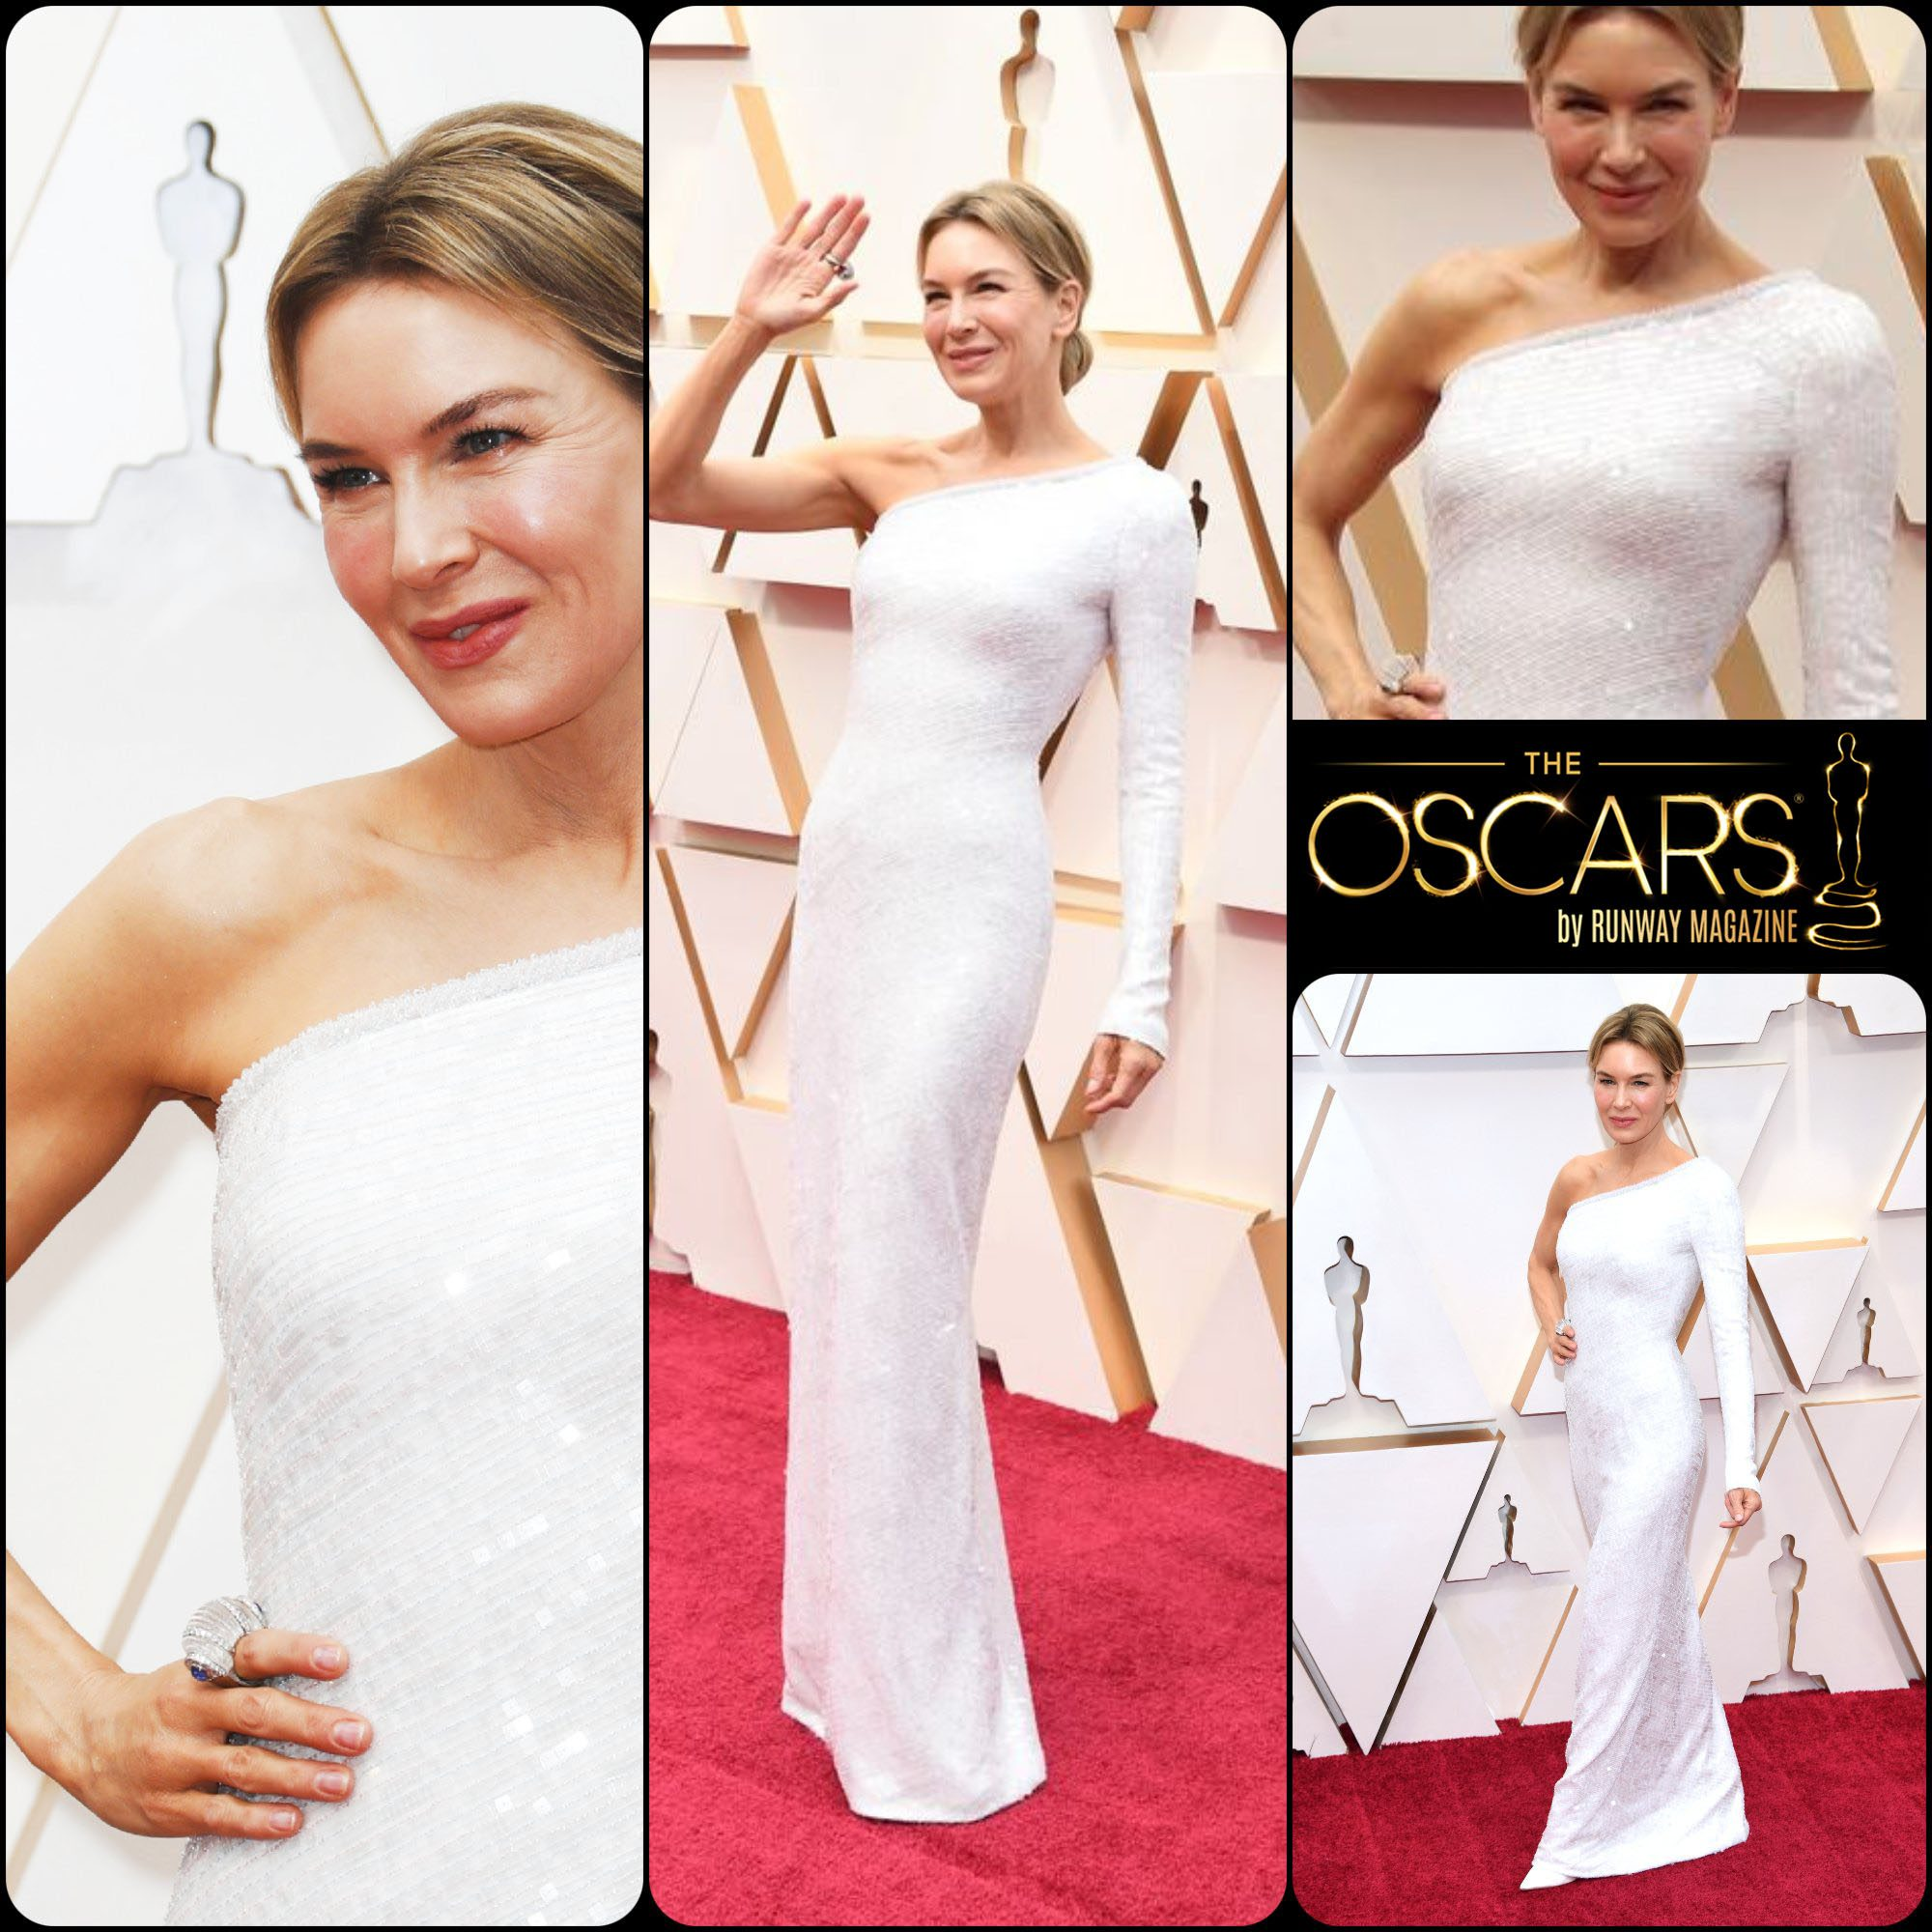 Renee Zellweger in Armani Privé at the 2020 Oscars by RUNWAY MAGAZINE